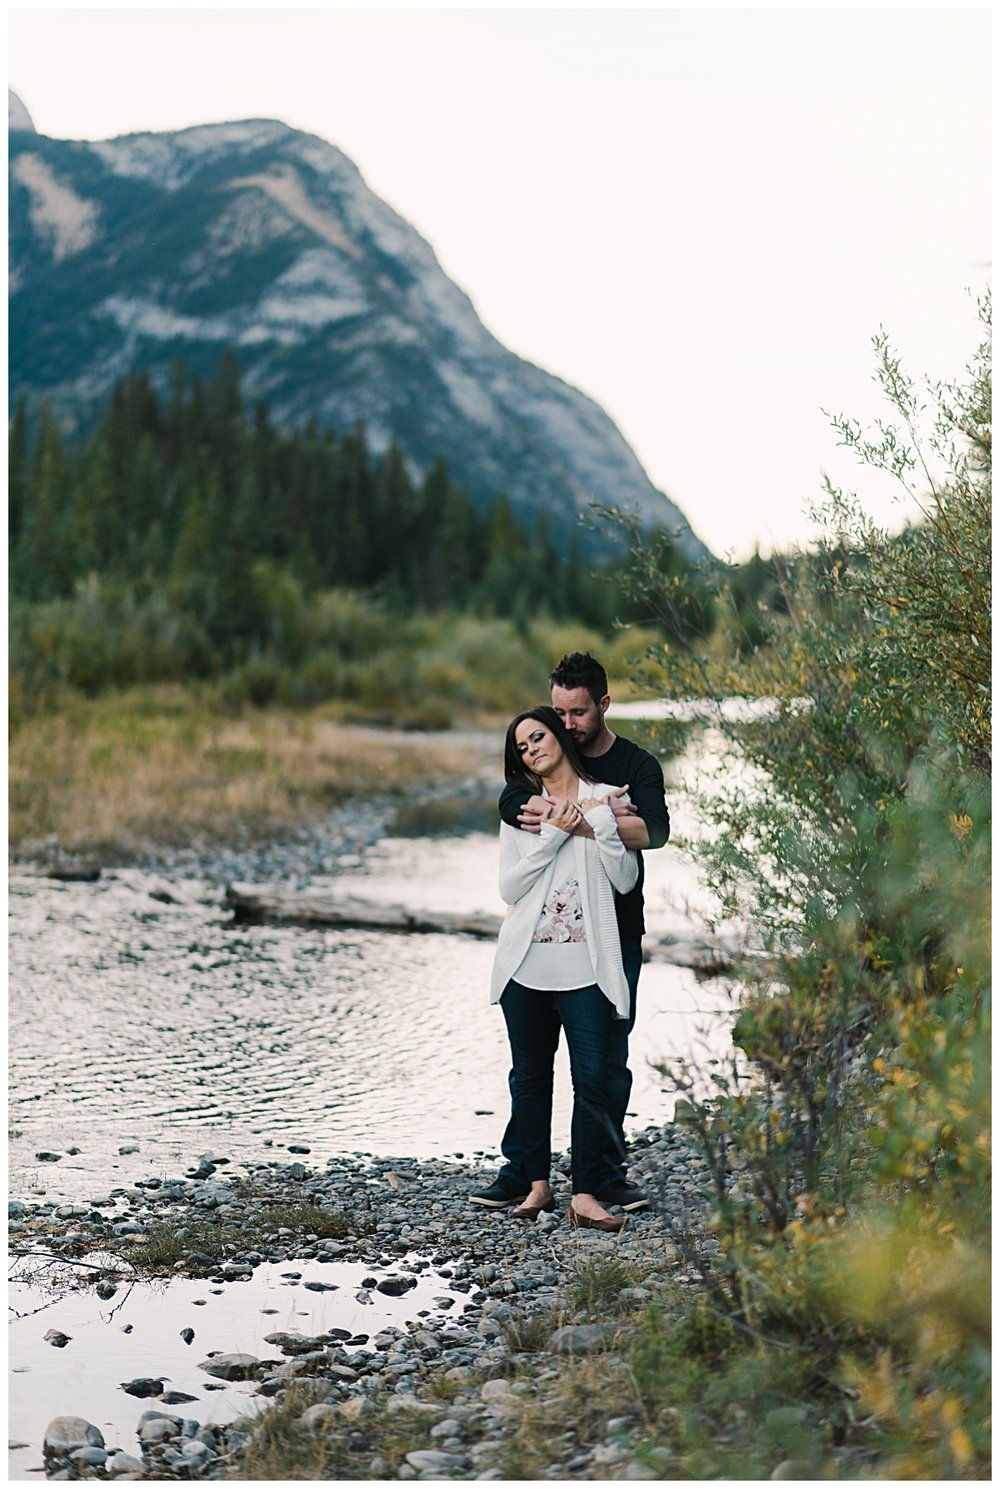 kananaskis_engagement (6 of 20).jpg